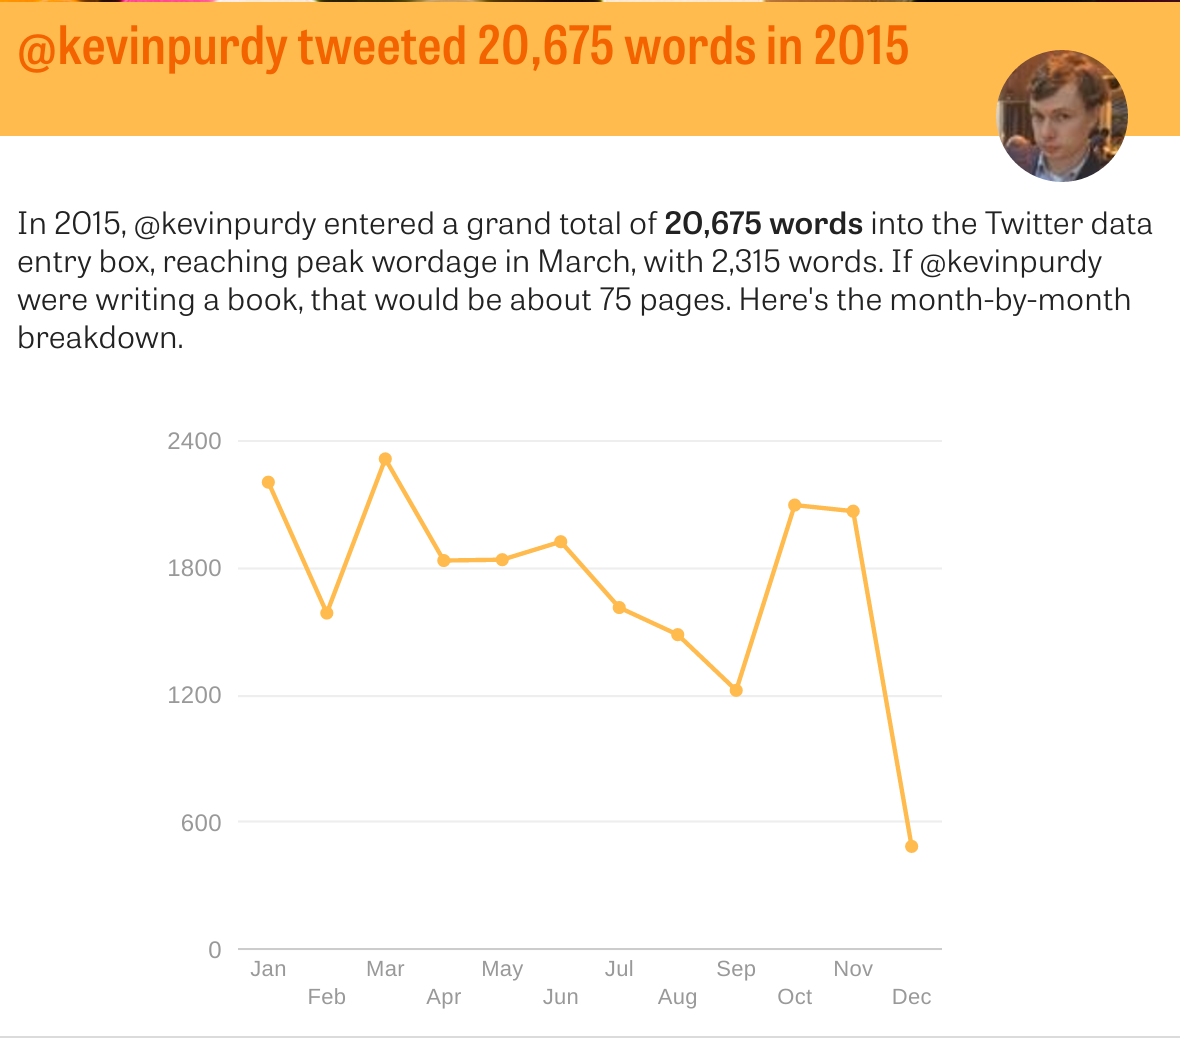 Unpaid Twitter work in 2015